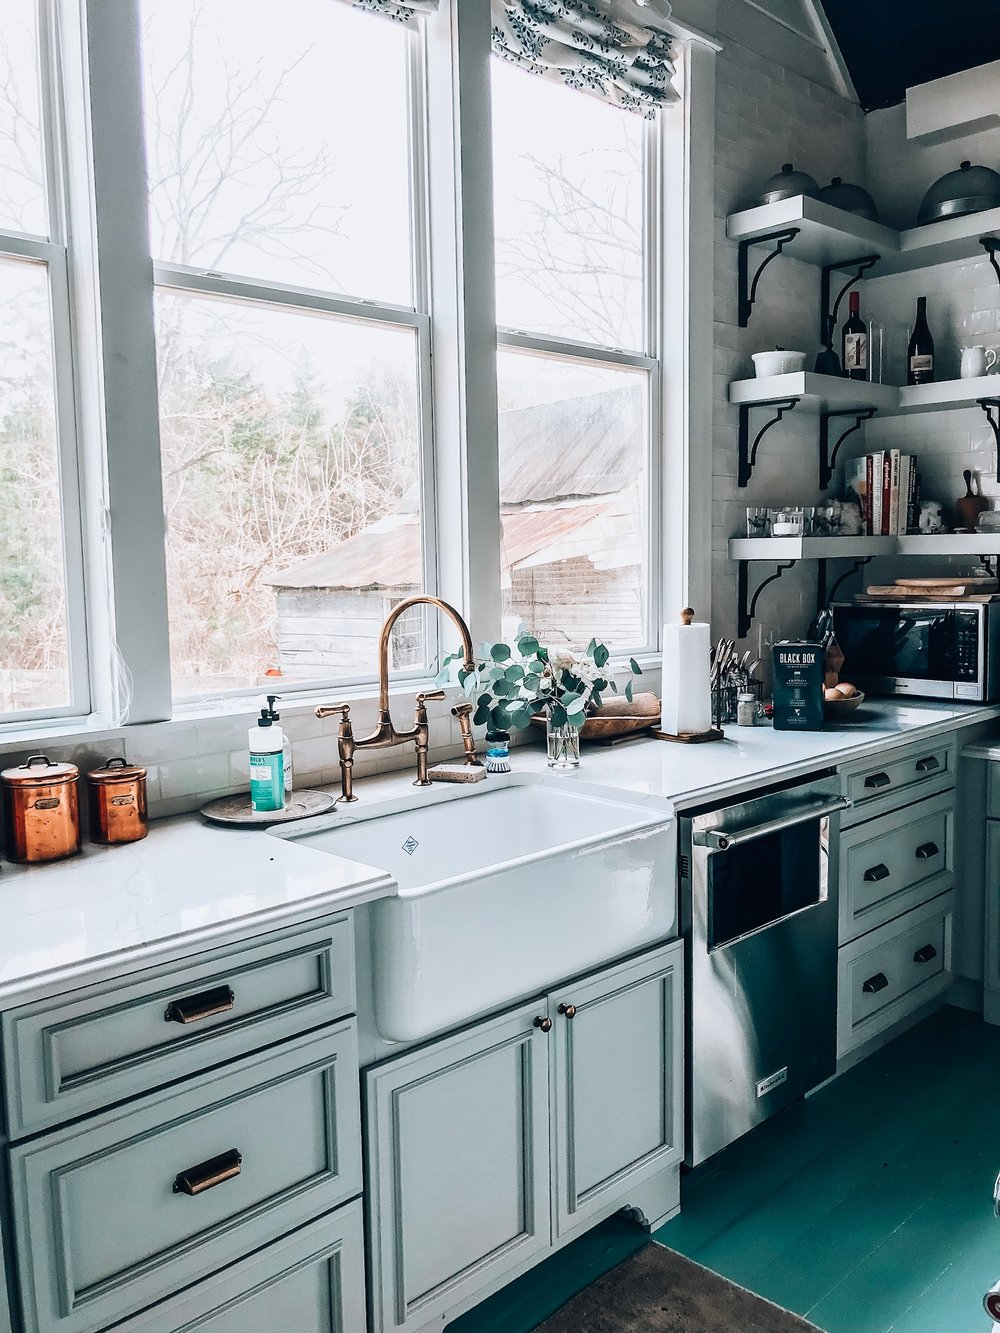 Kitchen, farm sink, dietitian, foodie, food blogger, girls trip, Nashville